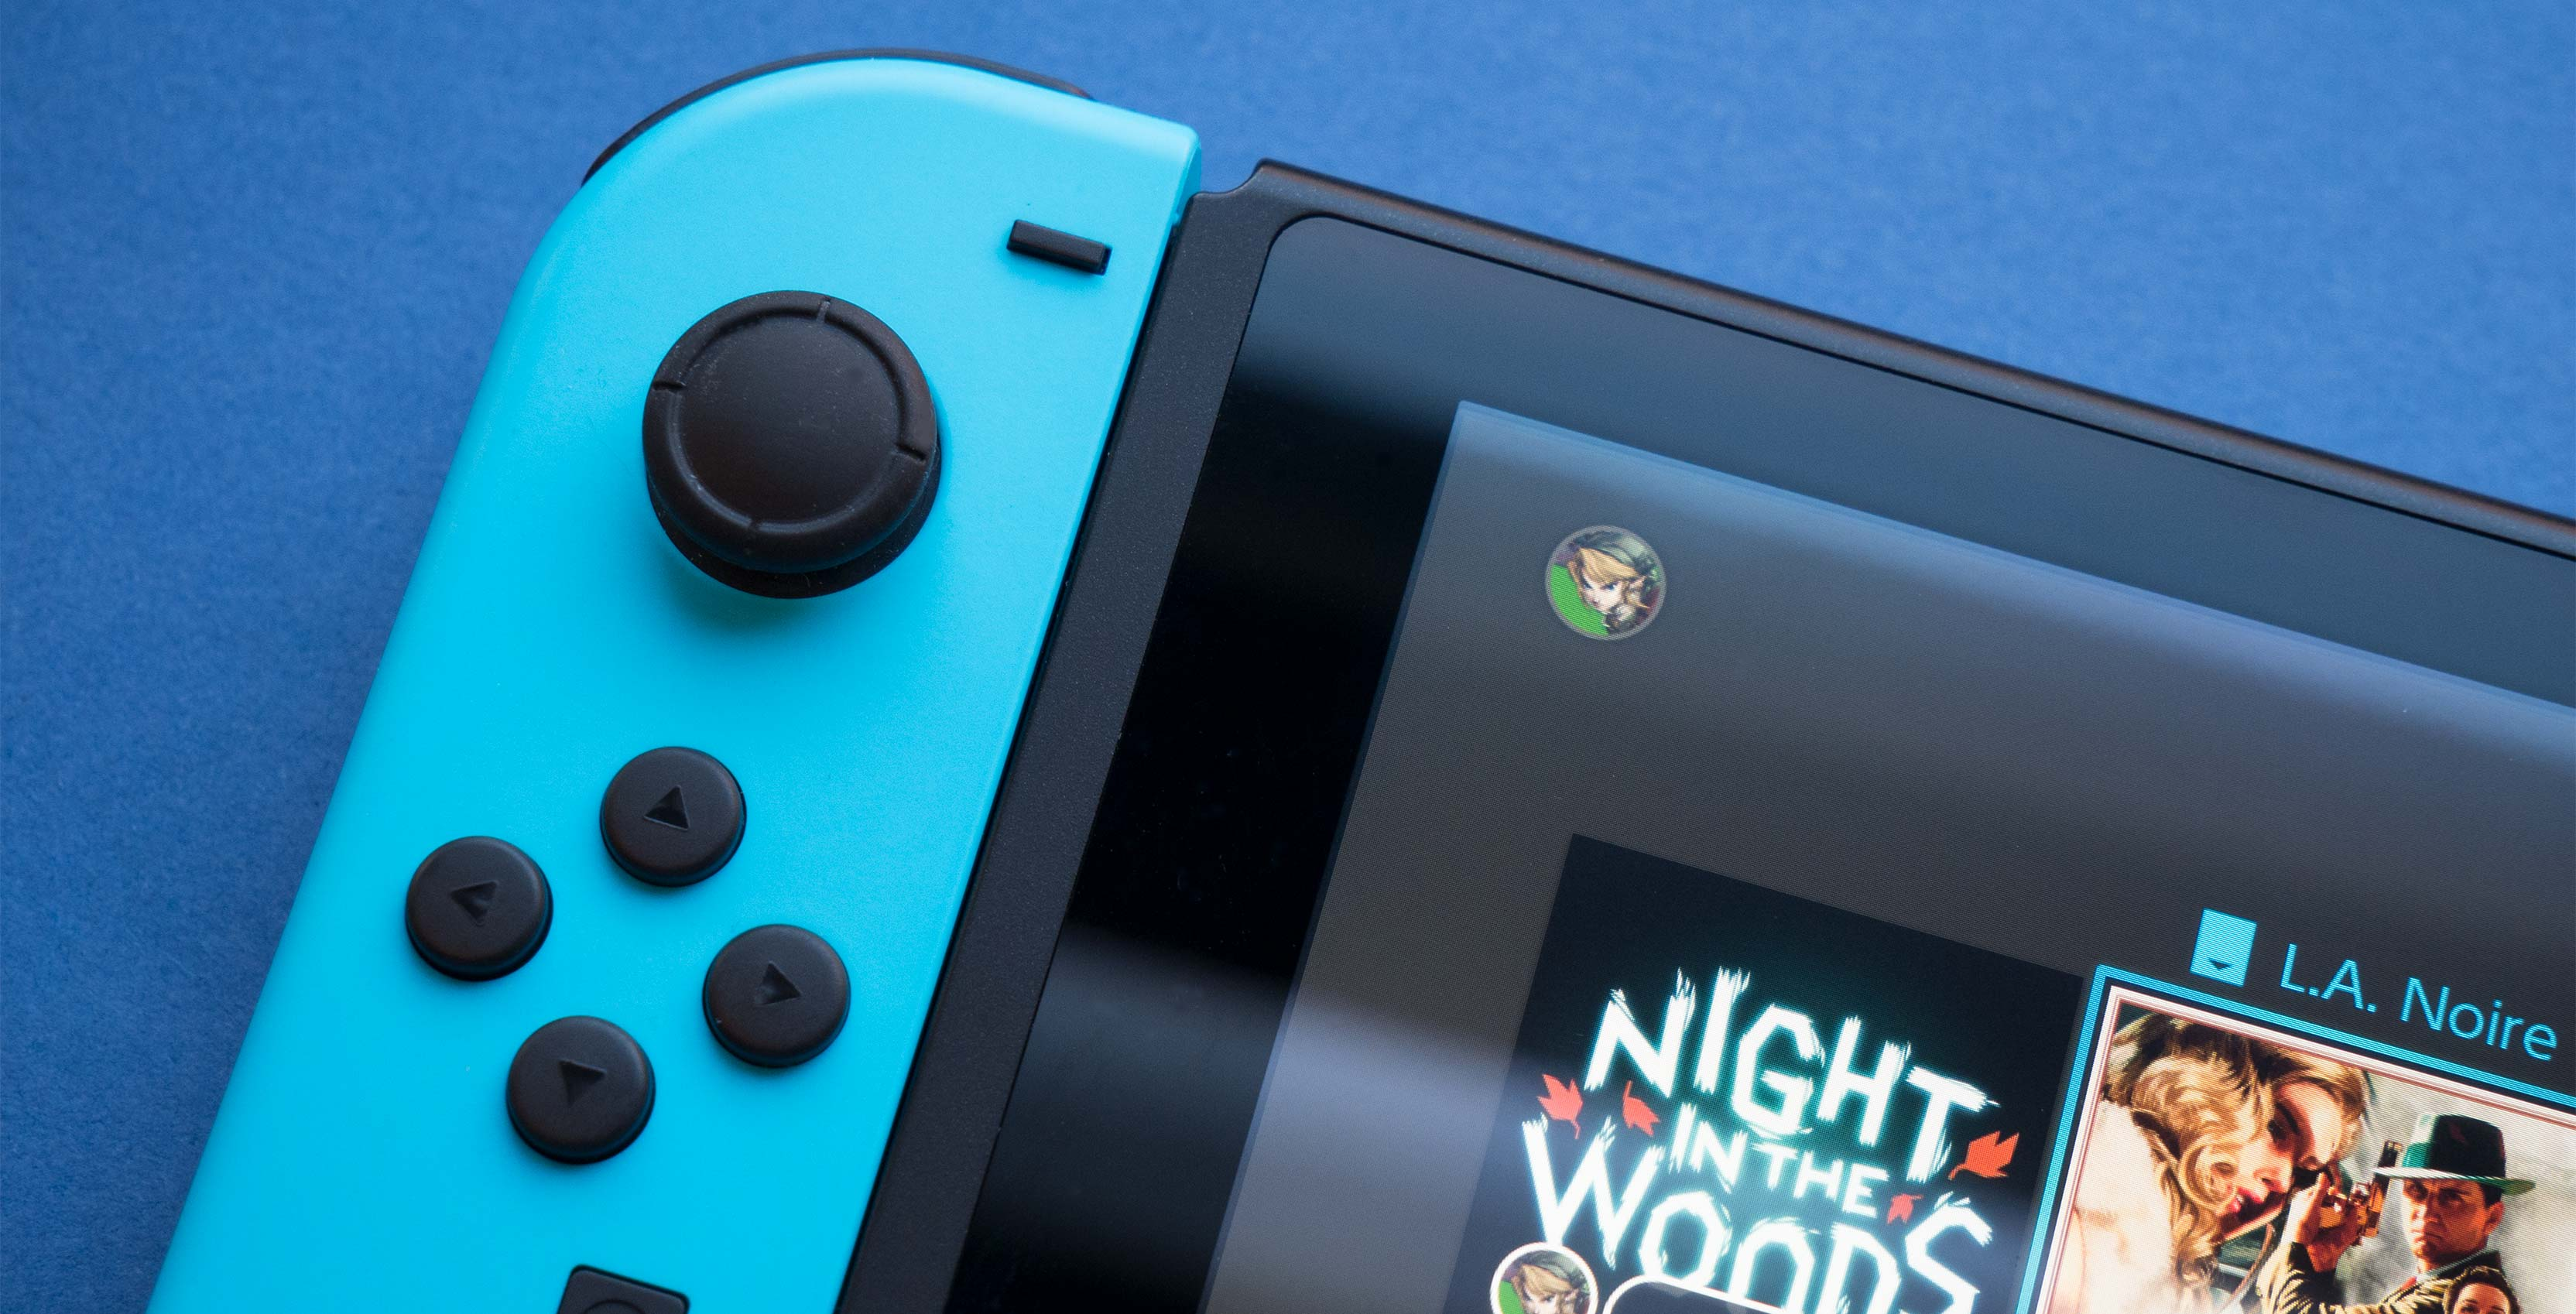 Nintendo Switch blue Joy-Con